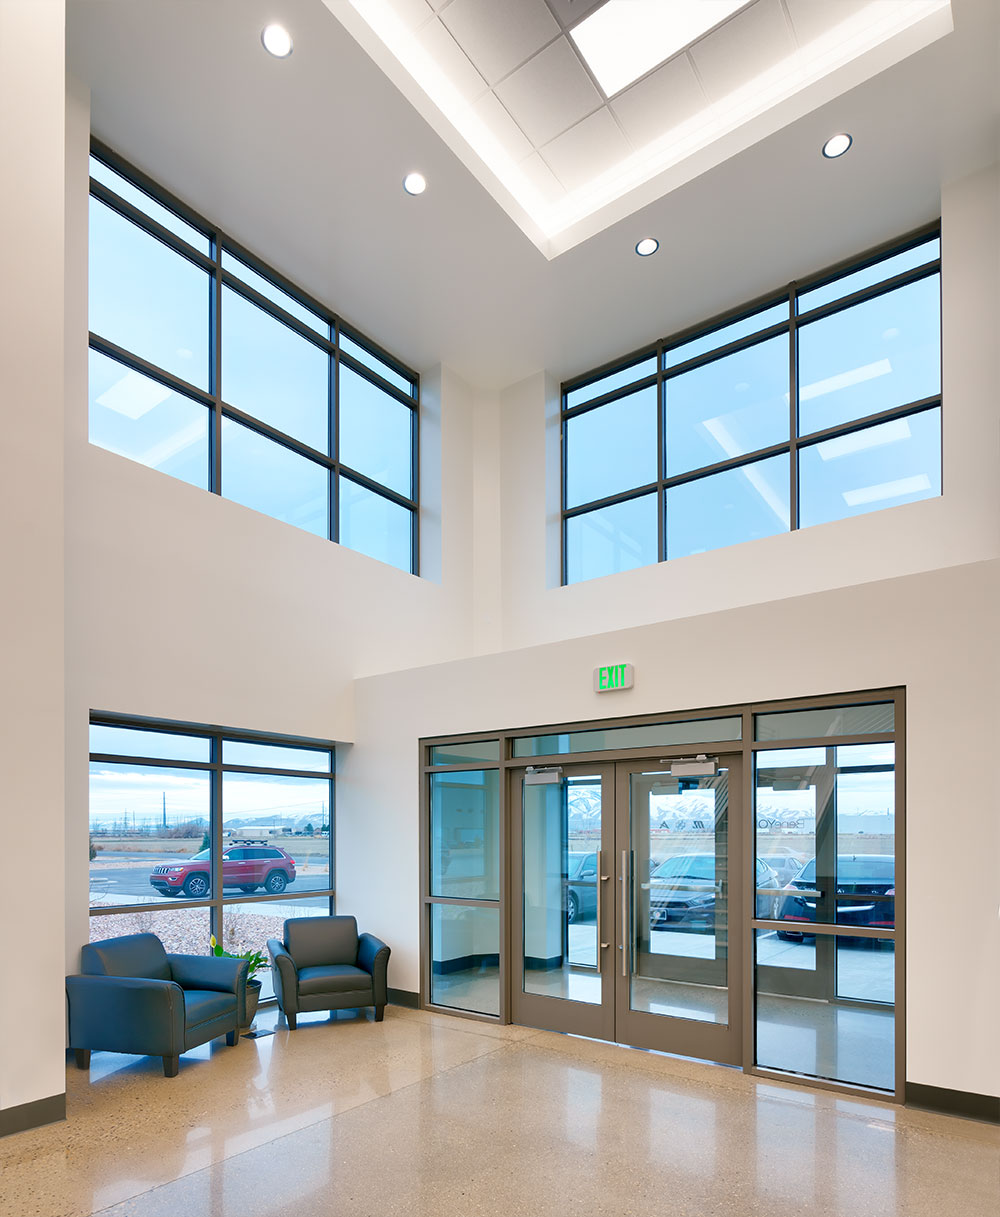 West-Lindon-Business-Office-Warehouse-Utah-Architecture